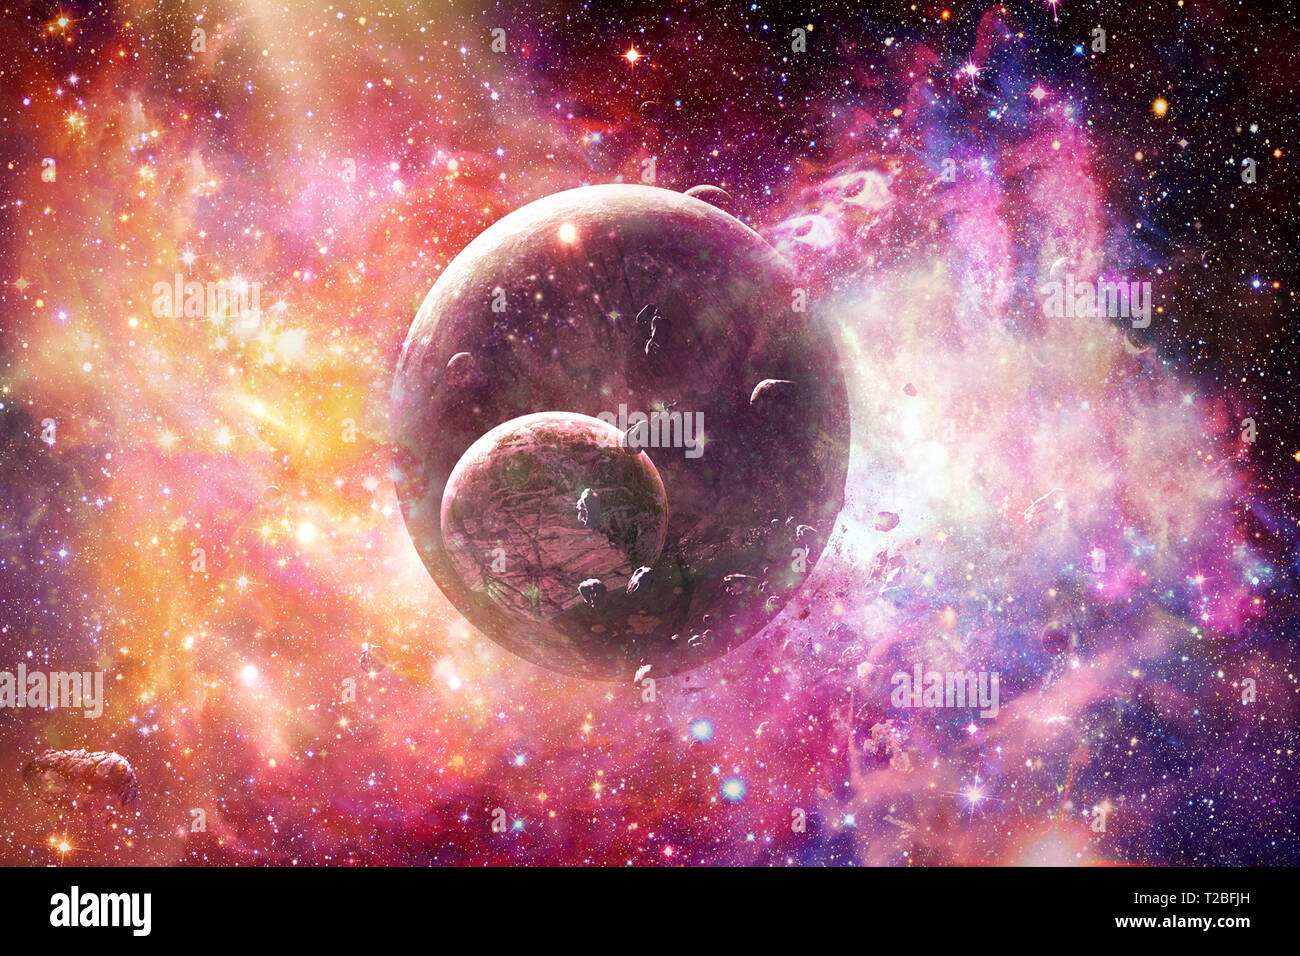 Abstract Artistic Beautiful Colorful Galaxy In A Multicolored Nebula Space With A Planet With It S Moon And Bright Stars Stock Photo Alamy